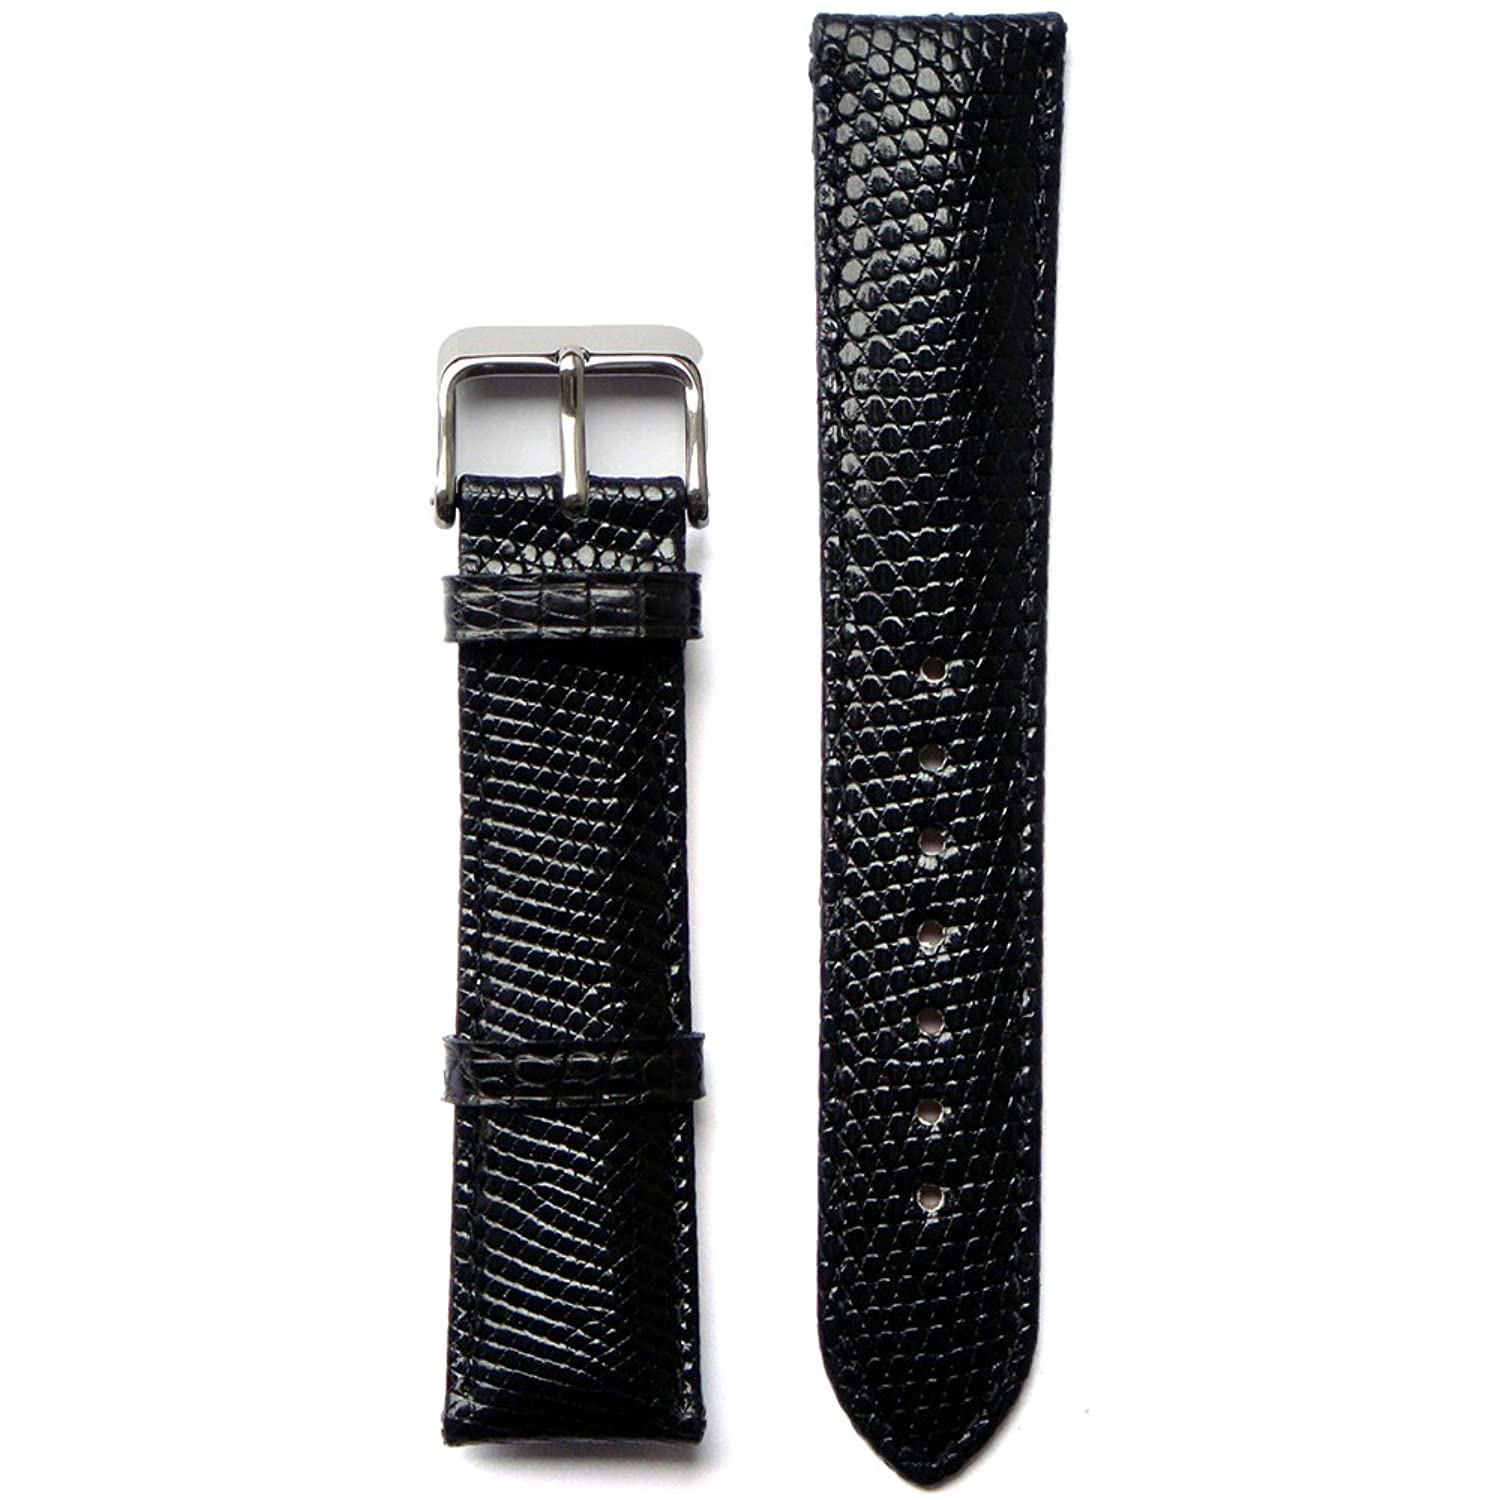 Black 20 Millimeters Genuine Lizard Skin Watch Strap black 20 millimeters genuine lizard skin watch strap